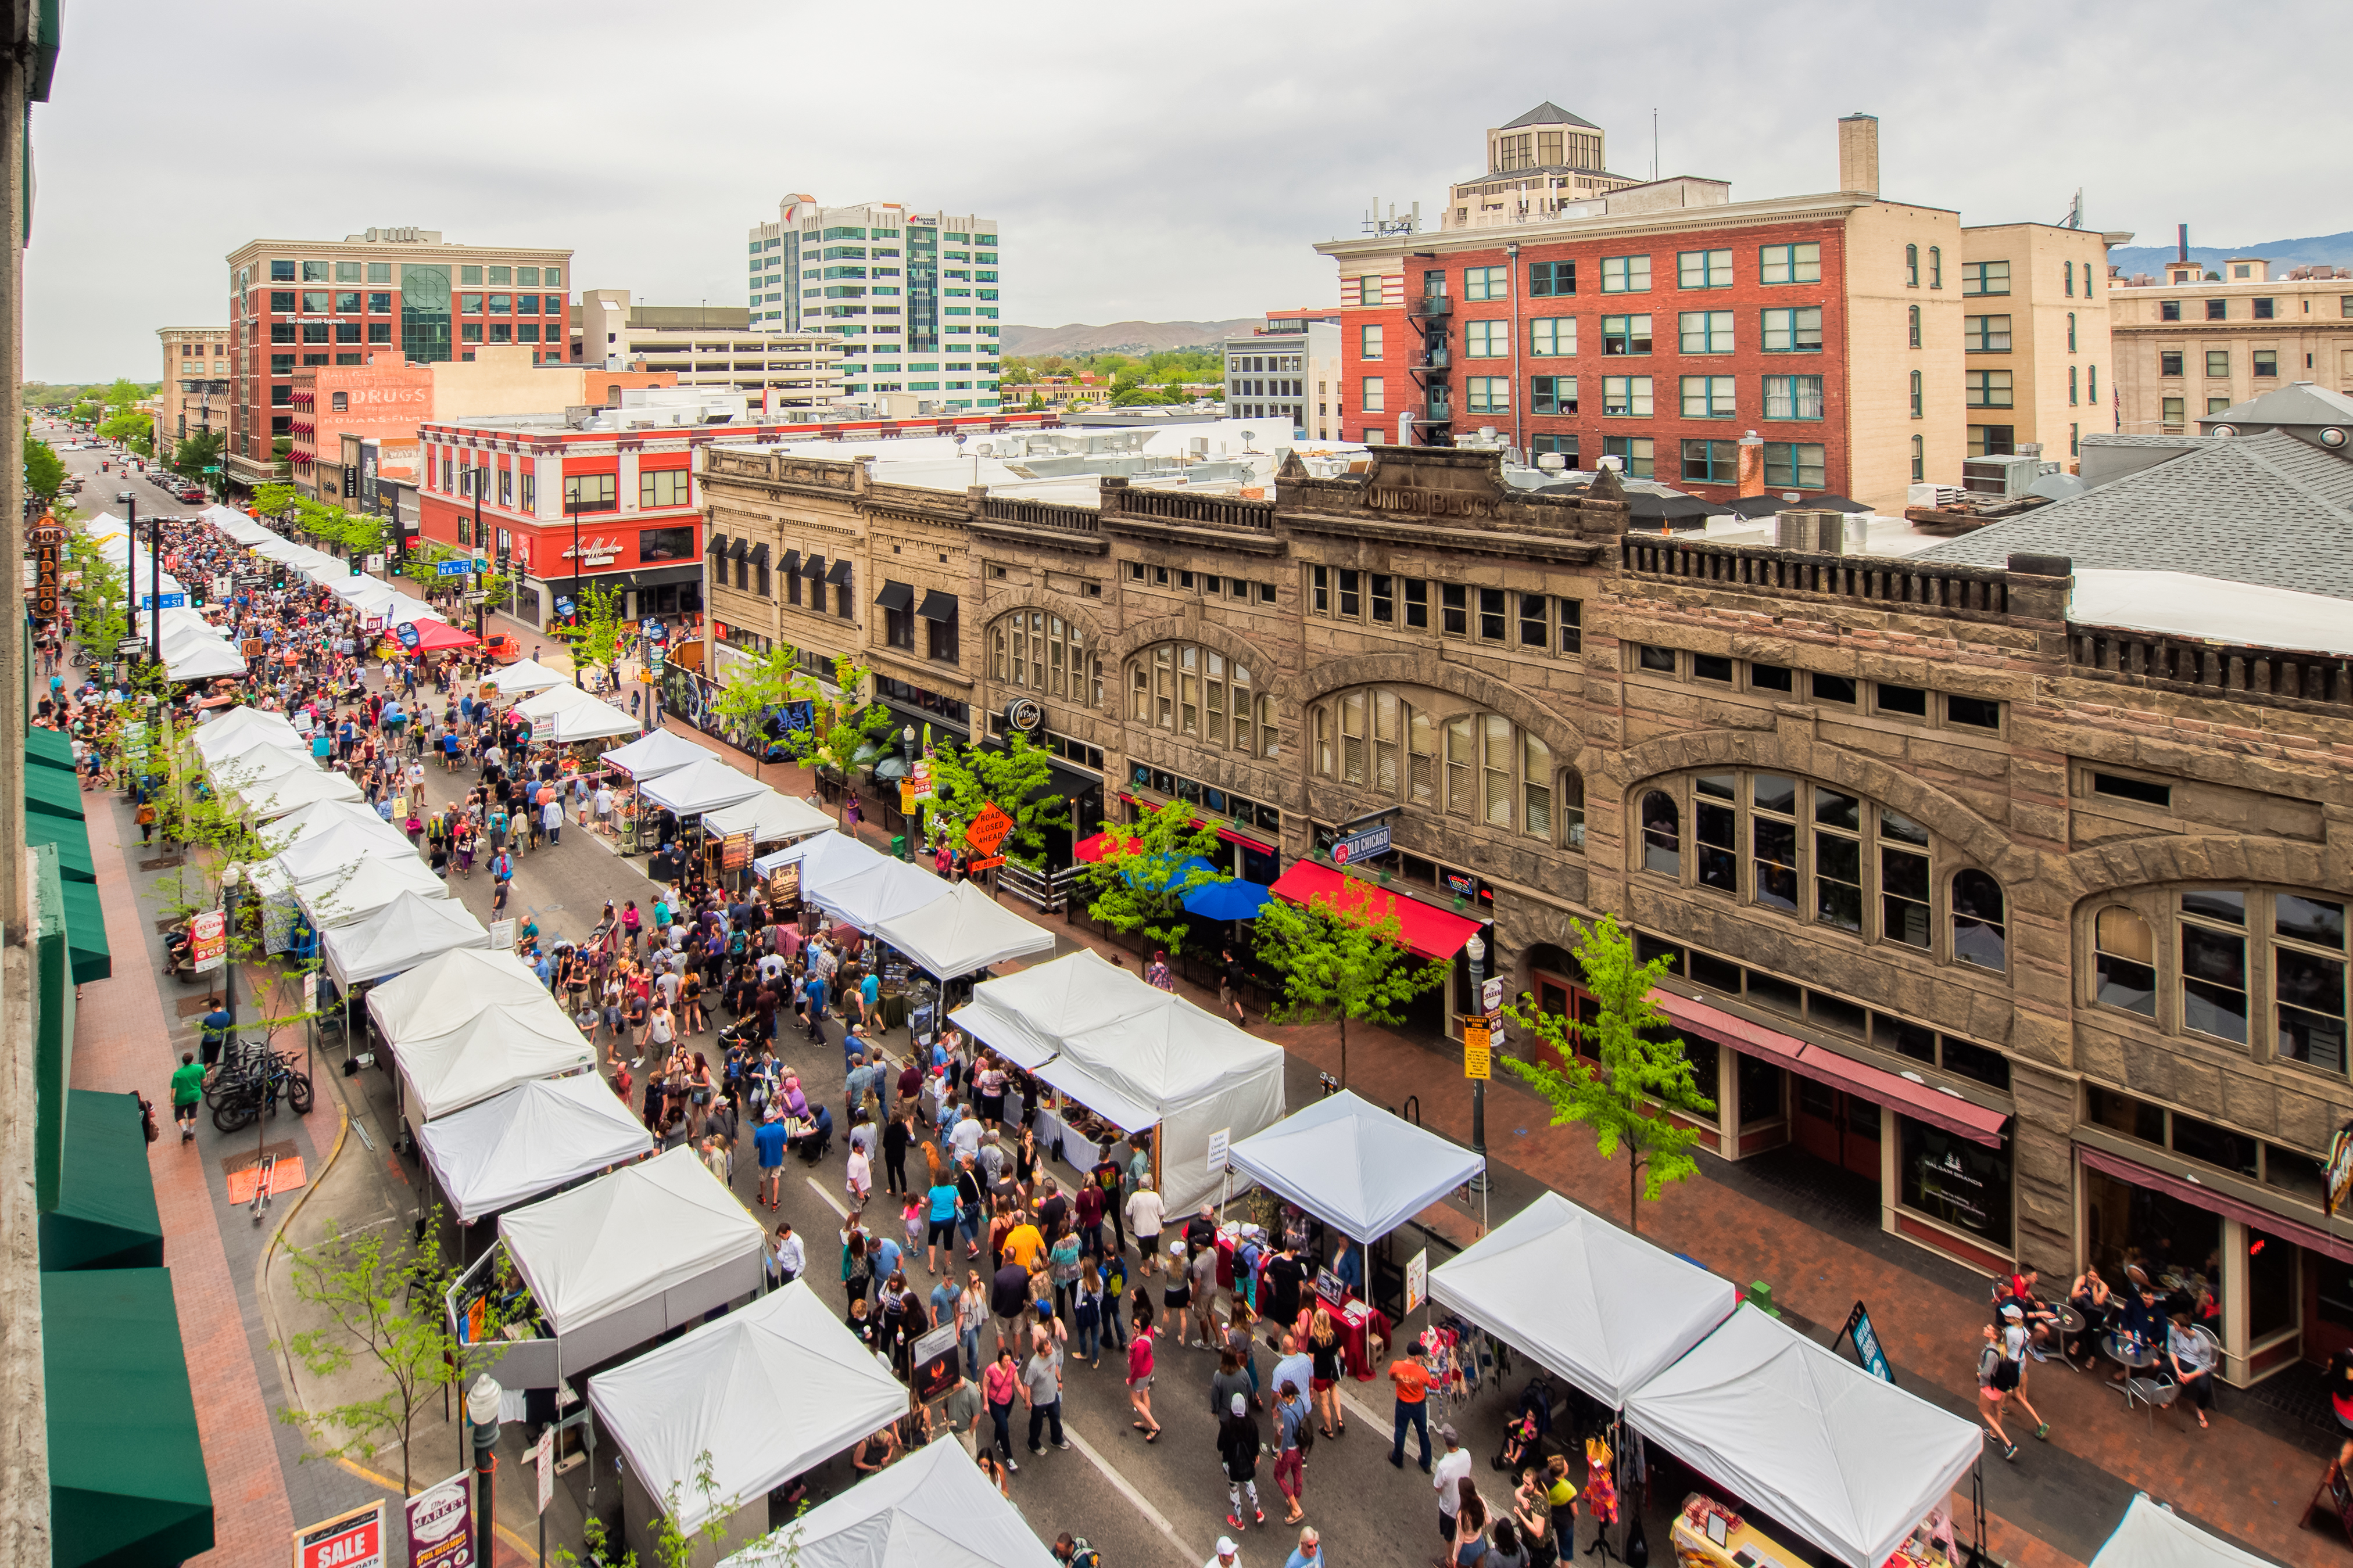 Boise-downtown-during-farmers-market.jpg?mtime=20200129110517#asset:107816